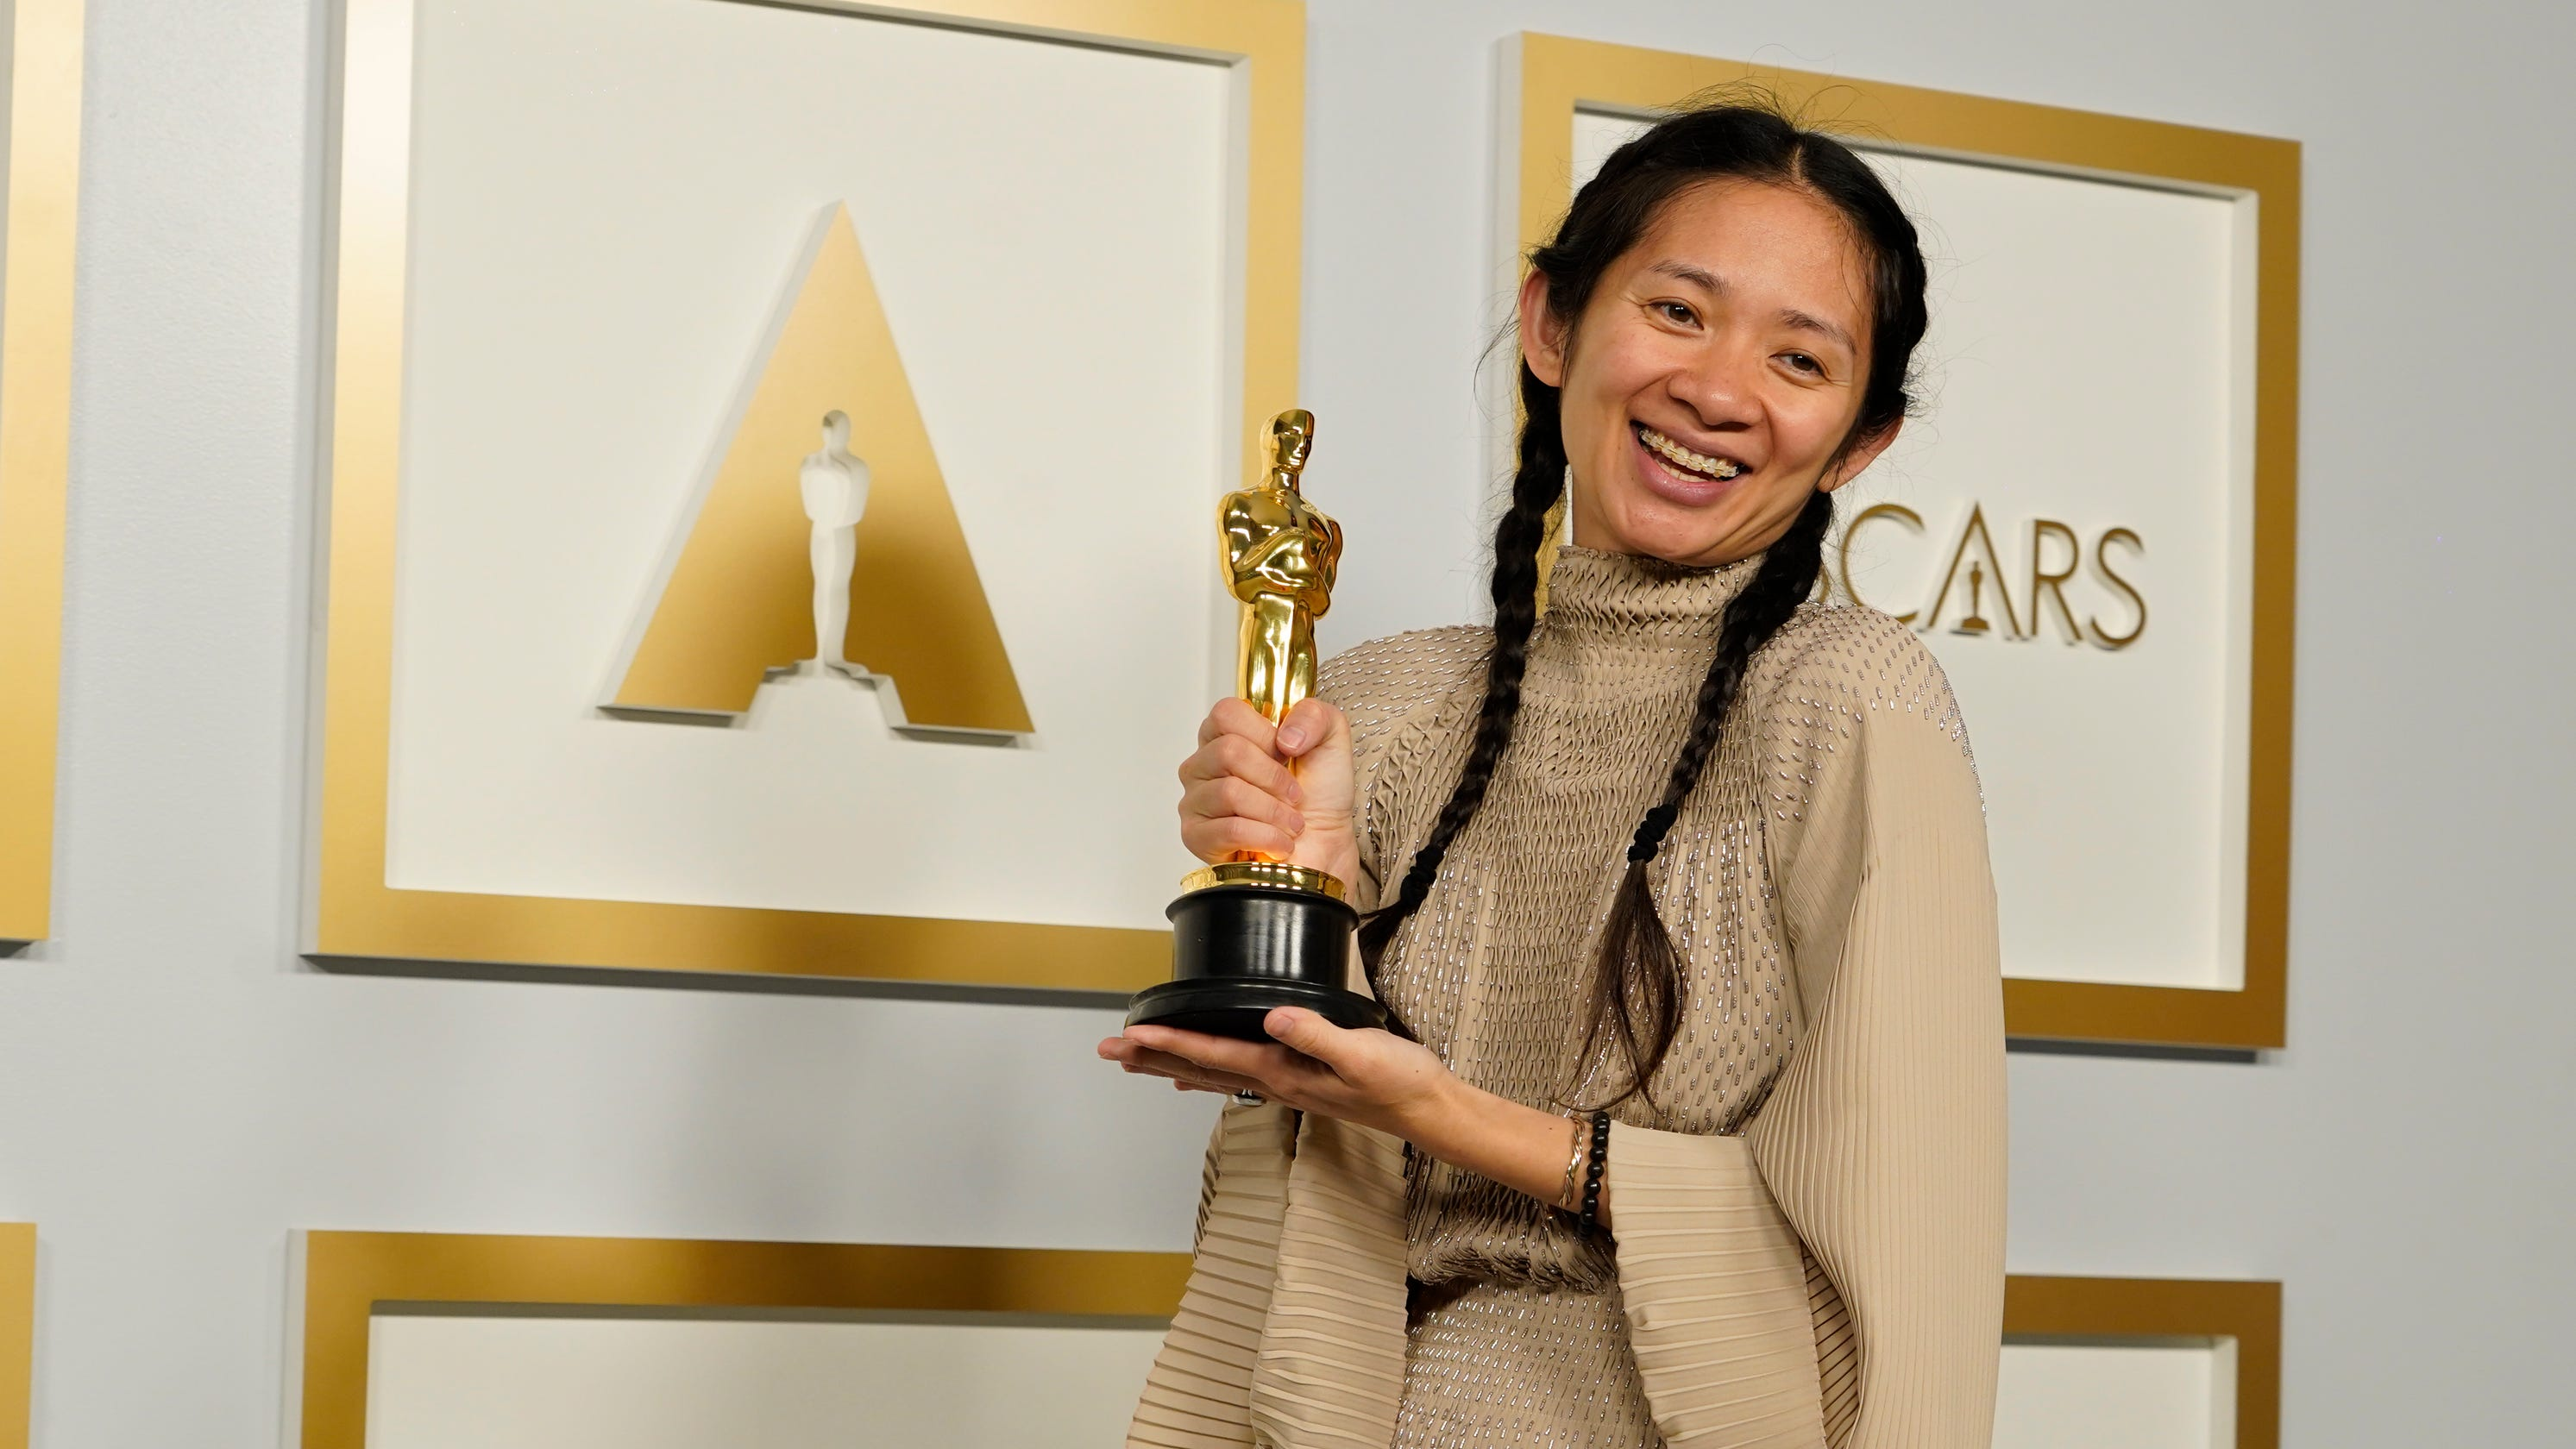 'Nomadland' and Chloé Zhao's Oscar wins are a turning point for Asians in Hollywood. Here's why